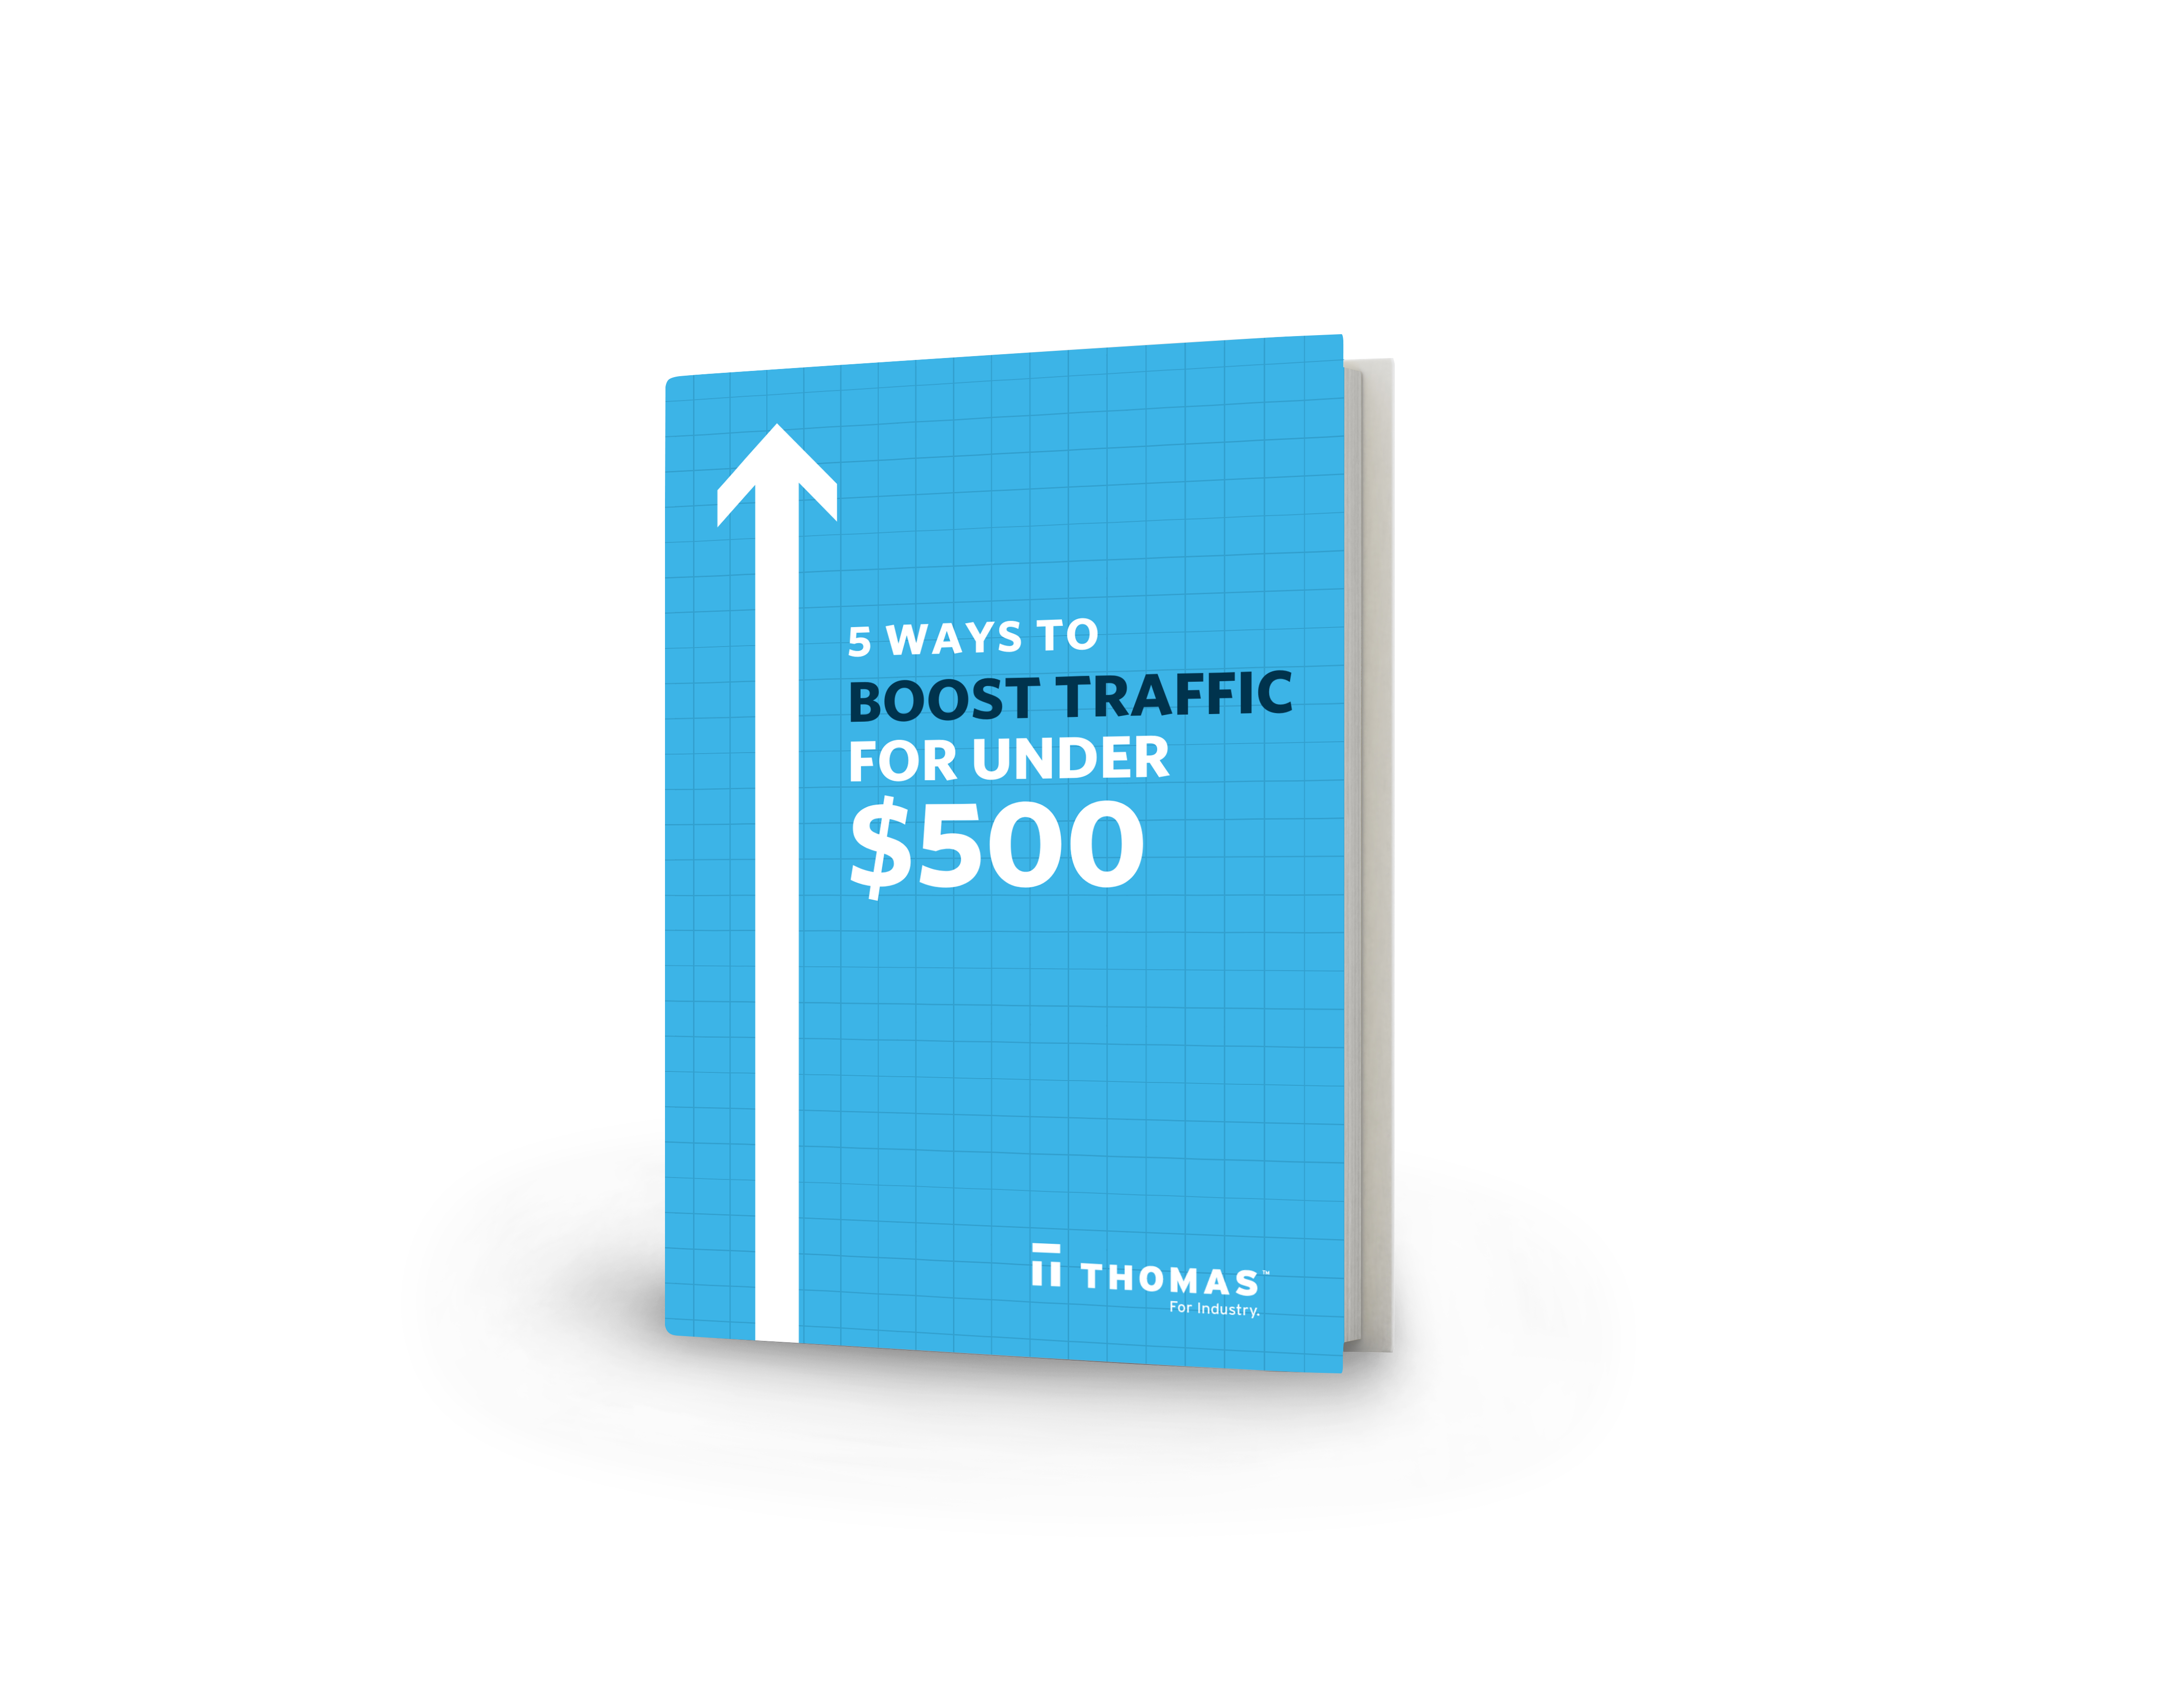 5 Ways To Boost Traffic For Under $500